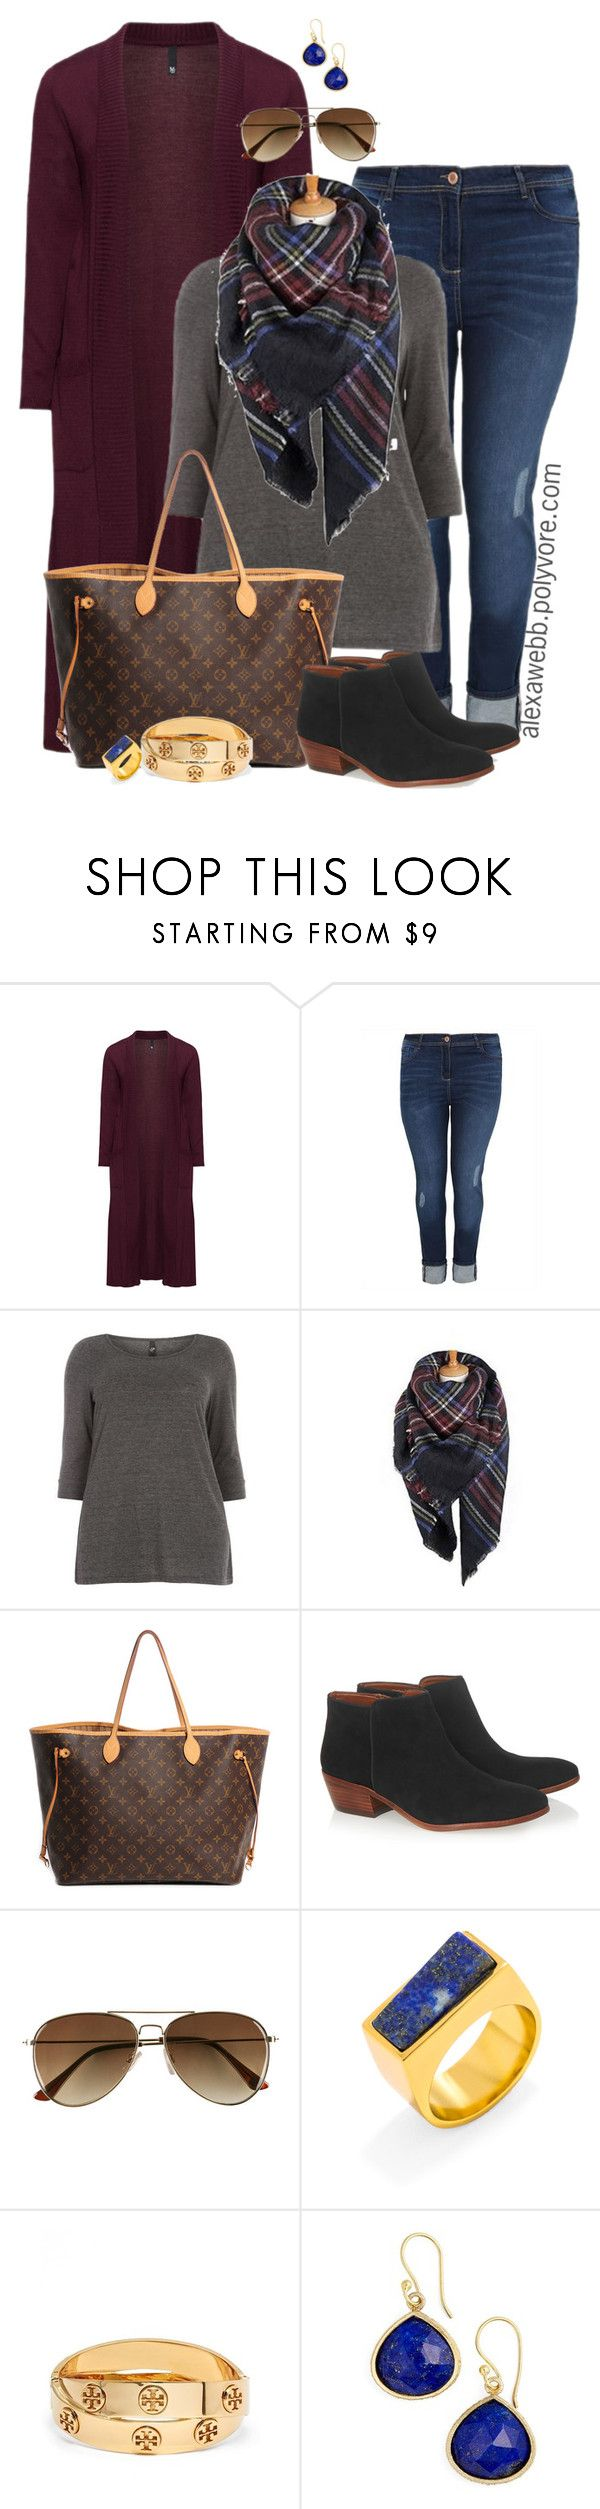 Plus Size - Fall Casual Outfit by alexawebb on Polyvore @alexandrawebb #plussize #plussizefashion #PolyvorePlus #outfit #alexawebb